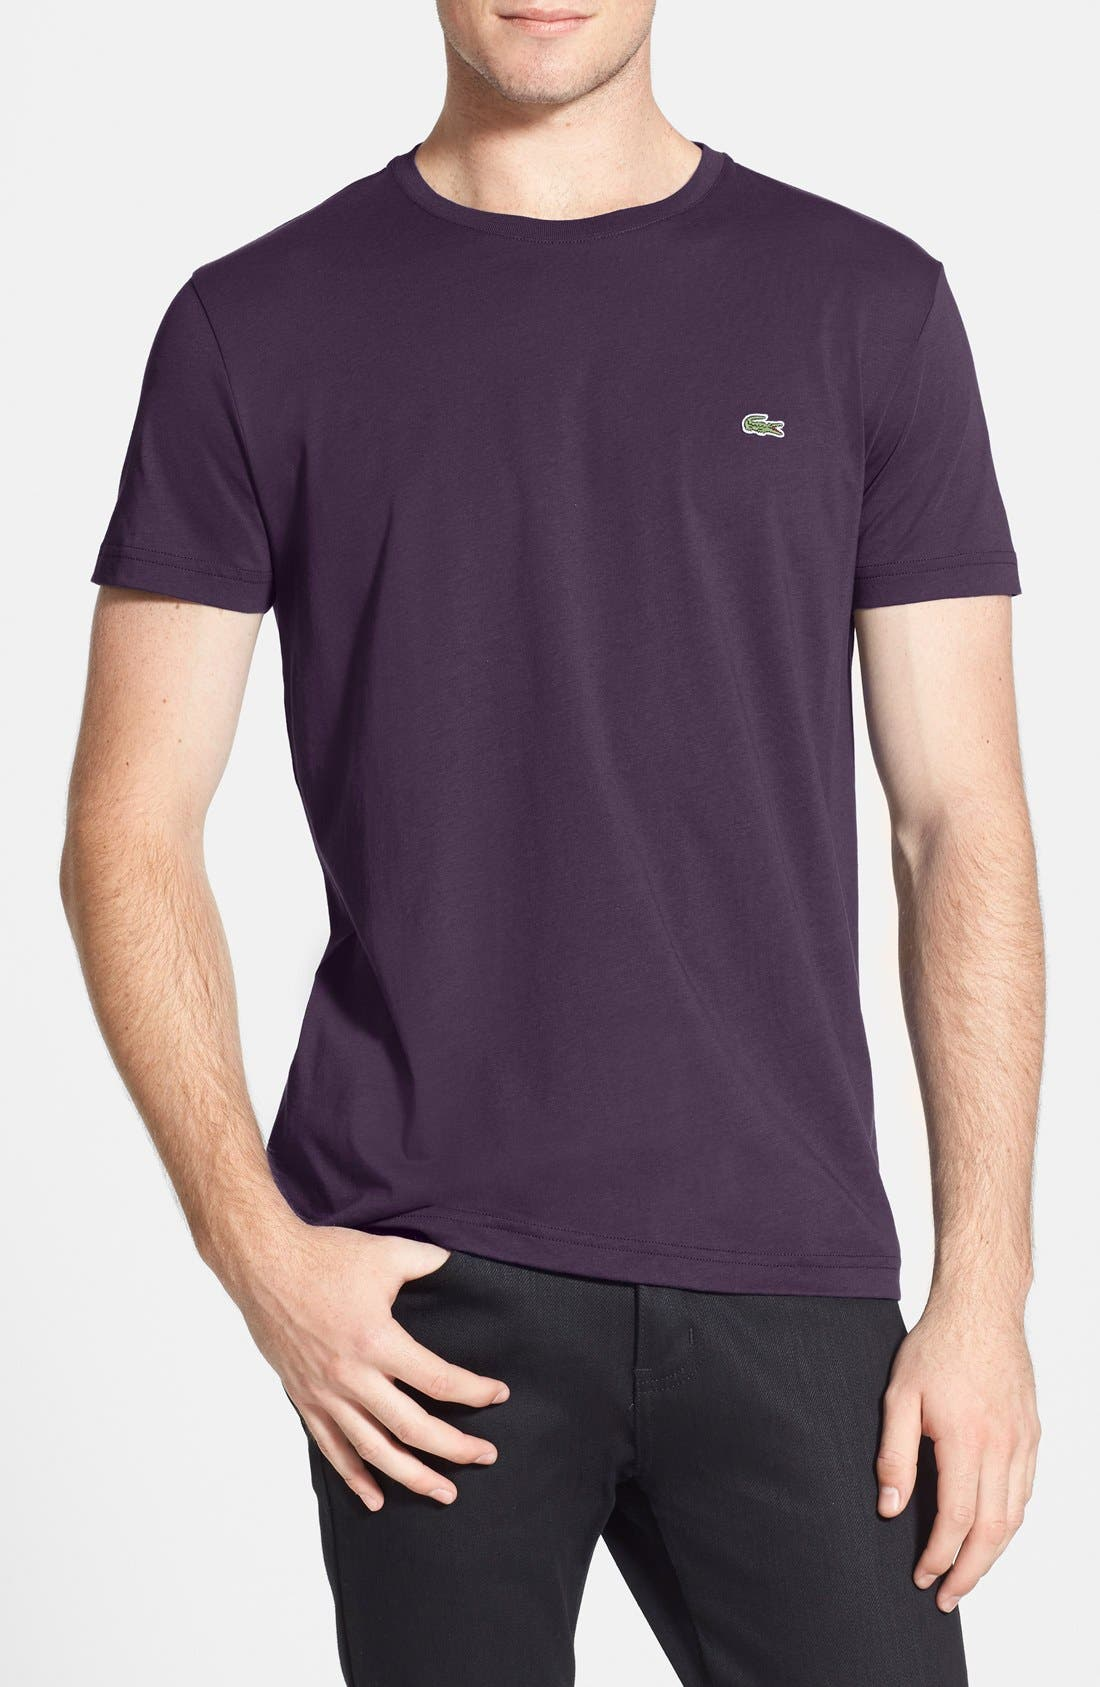 Main Image - Lacoste Pima Cotton Crewneck T-Shirt